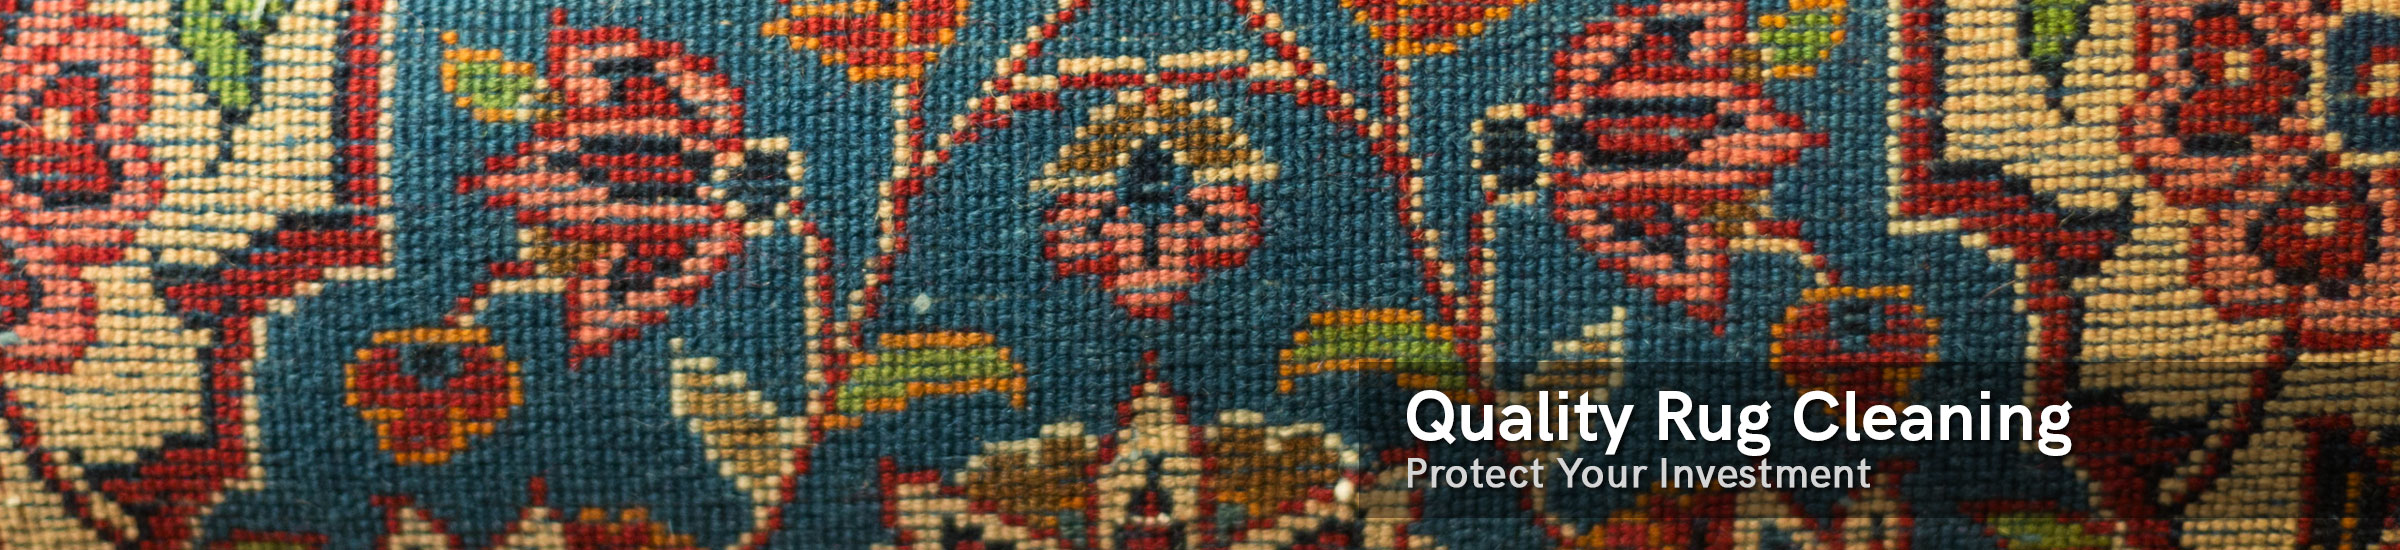 rug-protect-investment-2